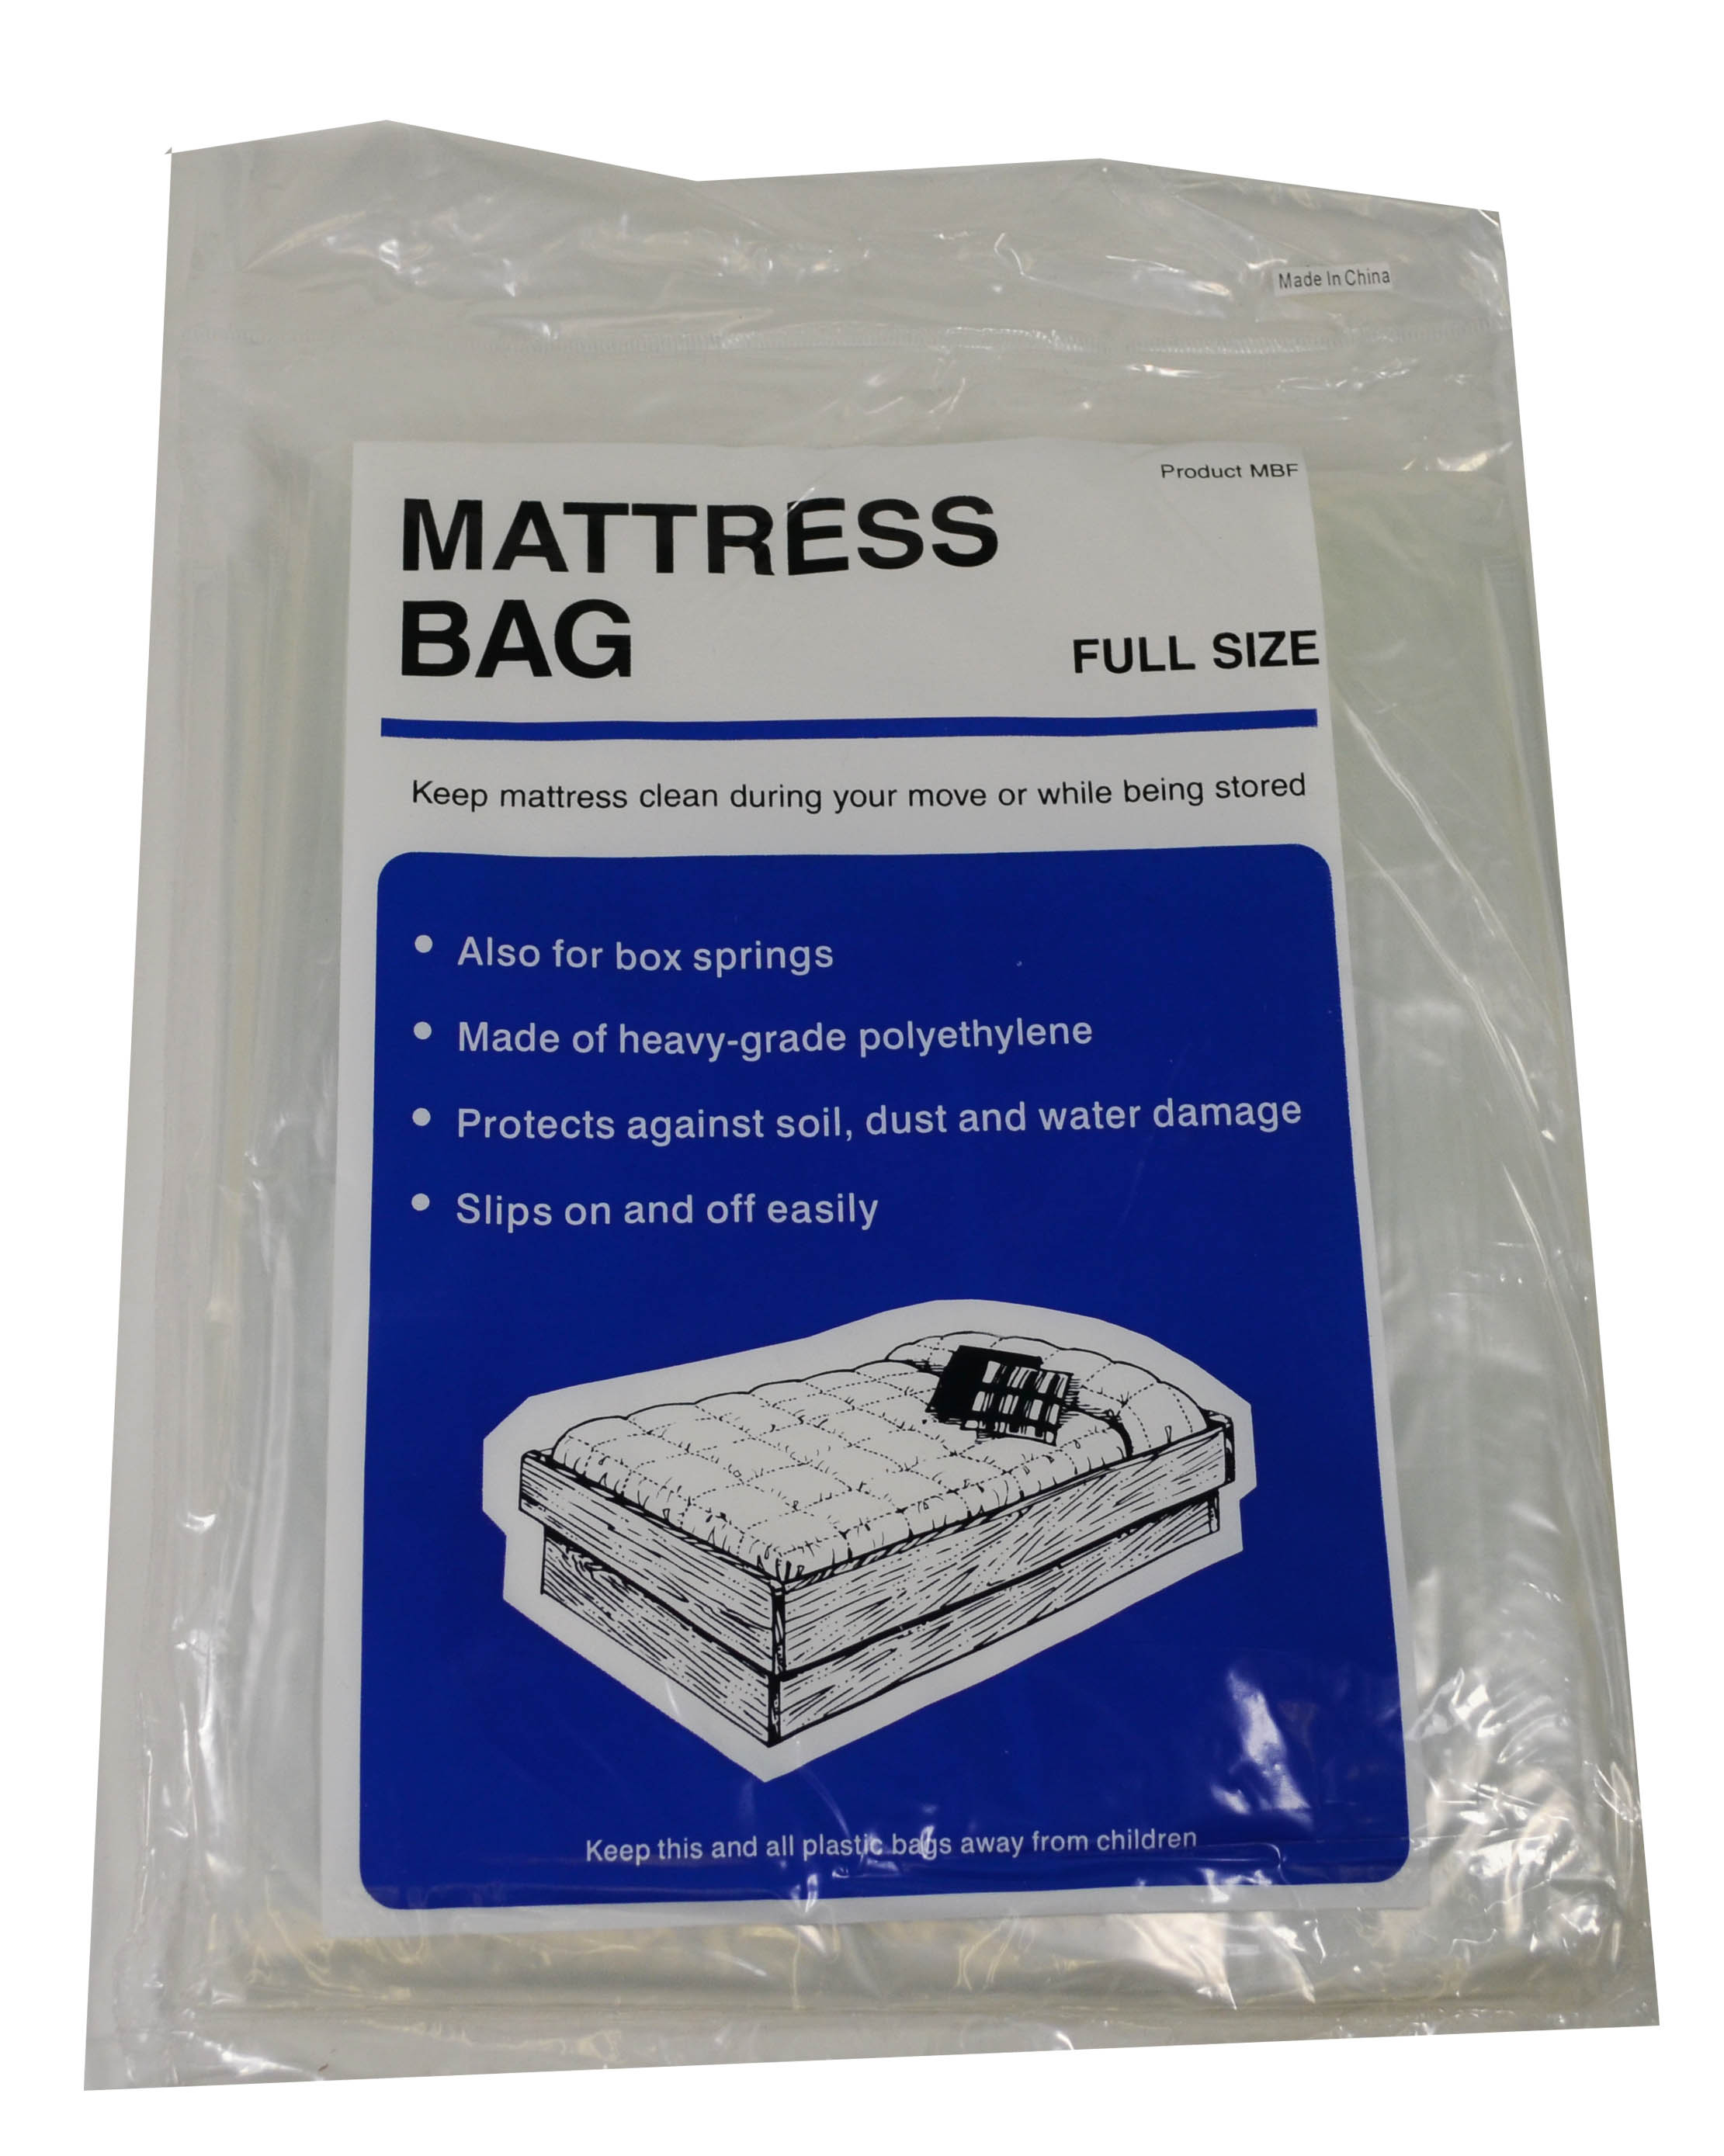 Lot of 4 Mattress Bag Full Size Protect During Move